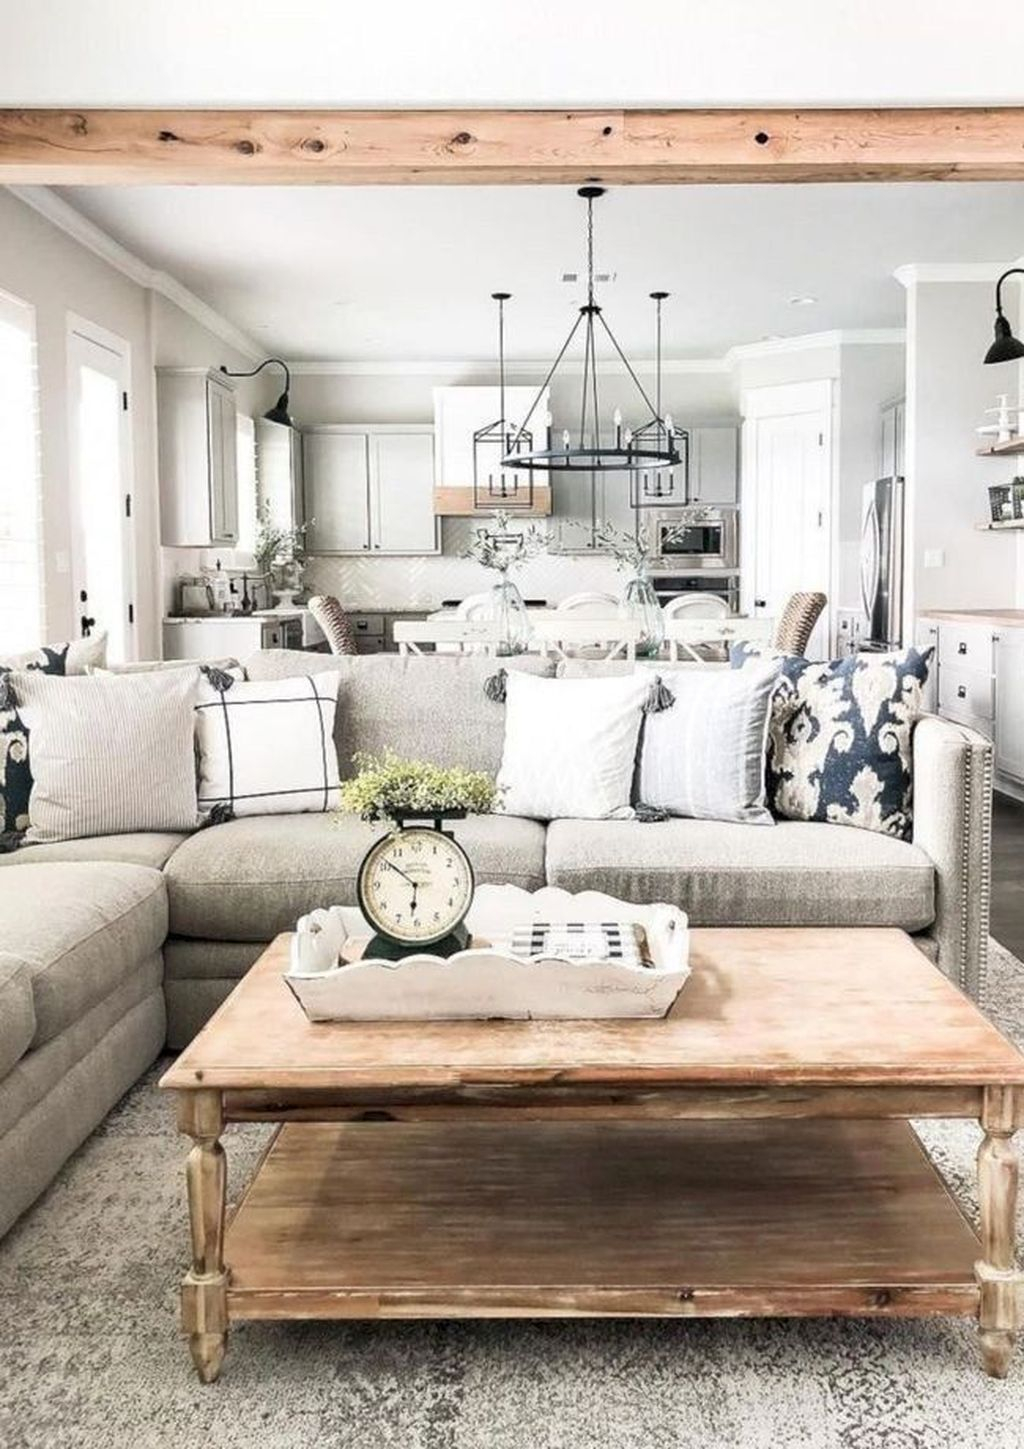 Vintage Home Interior Design Ideas For Awesome Living Room 30